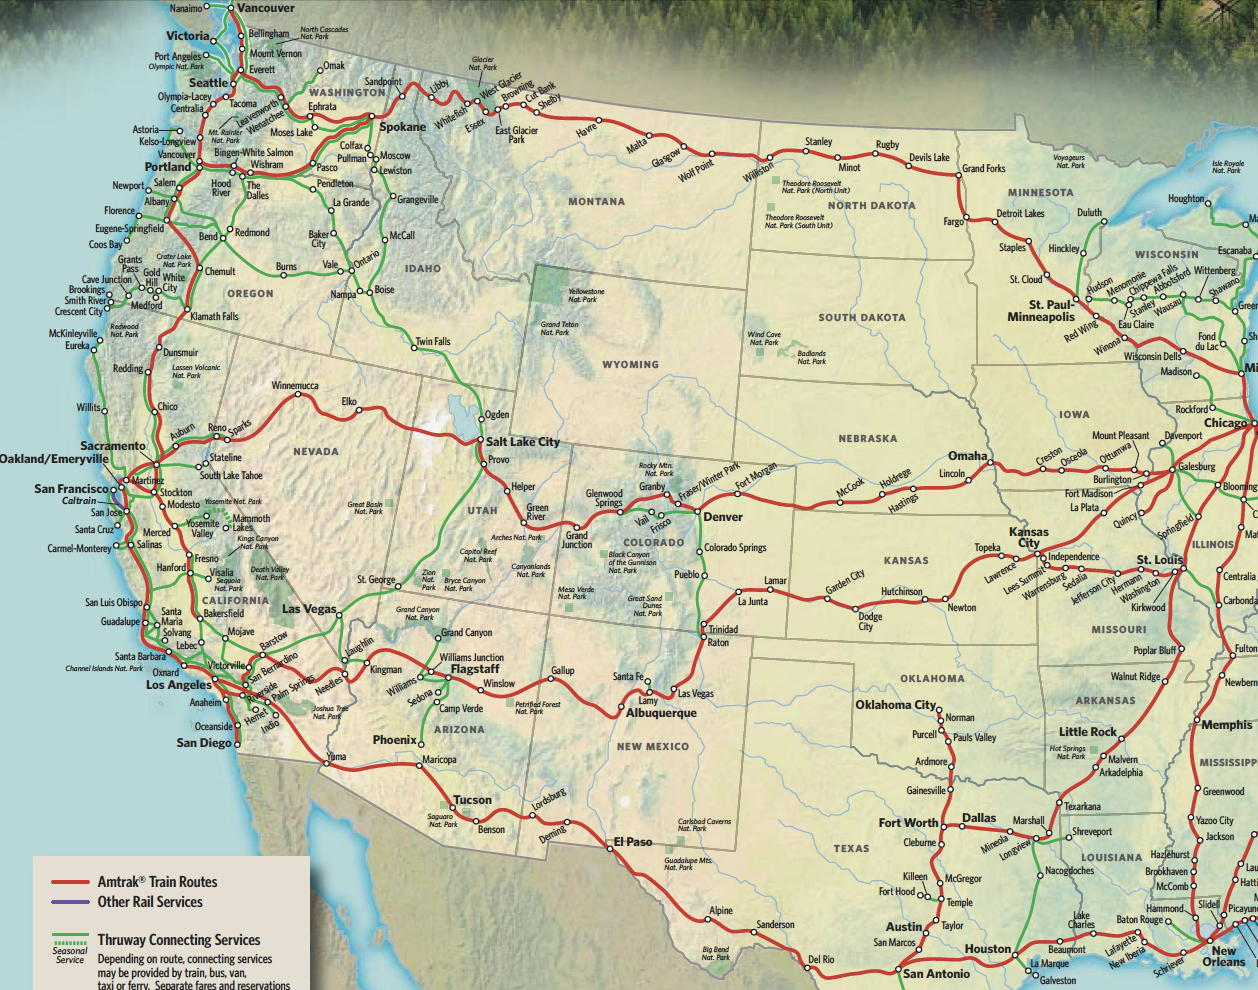 Amtrak Rail Passes Amtrak System Map Amtrak History Of - Amtrak map of routes in us